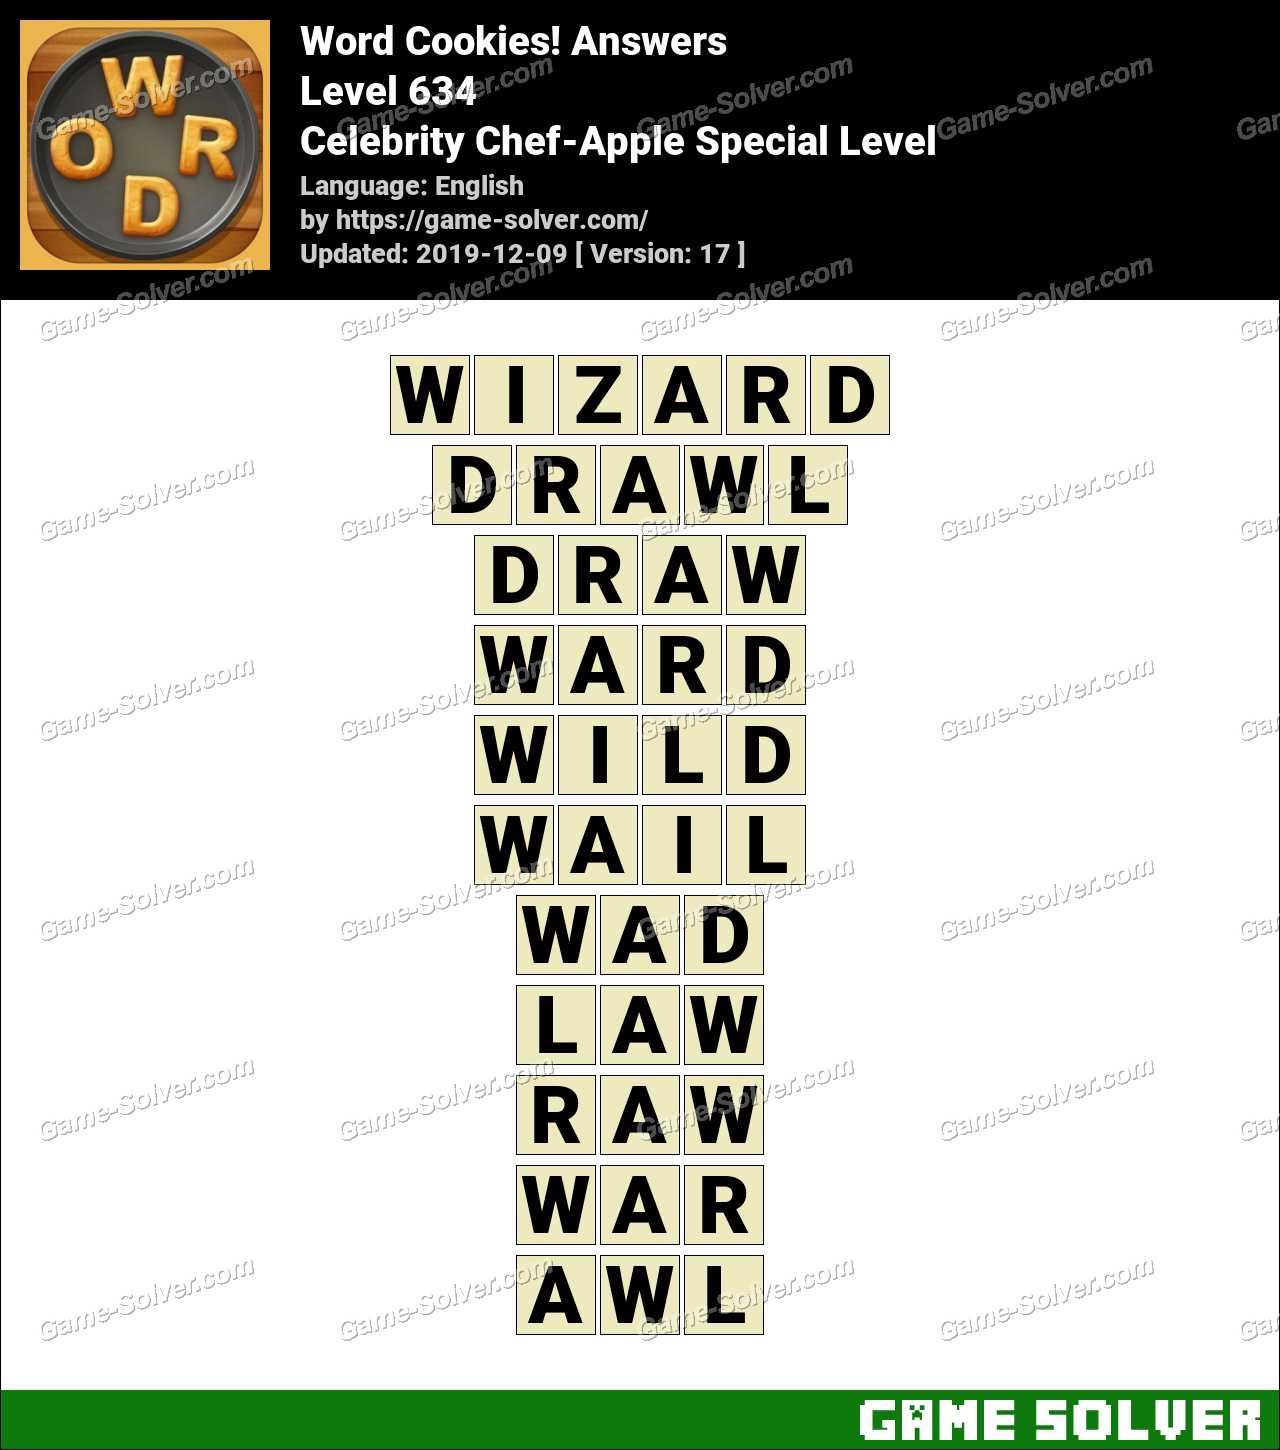 Word Cookies Celebrity Chef-Apple Special Level Answers